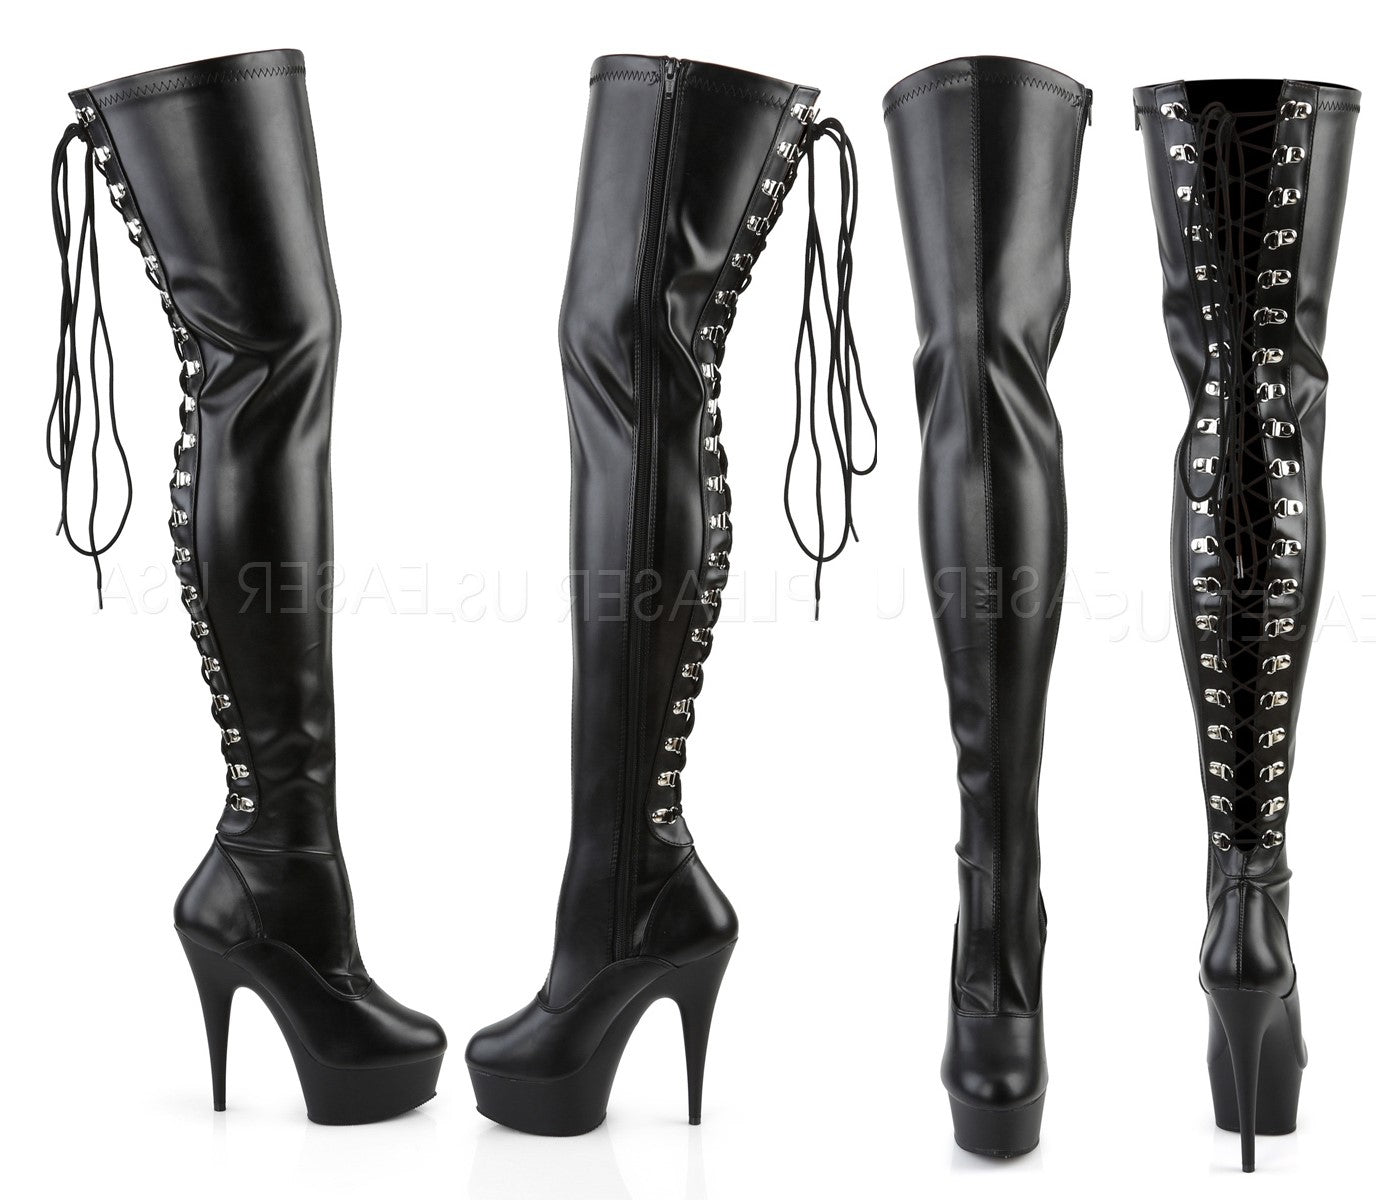 Delight Thigh High Boot